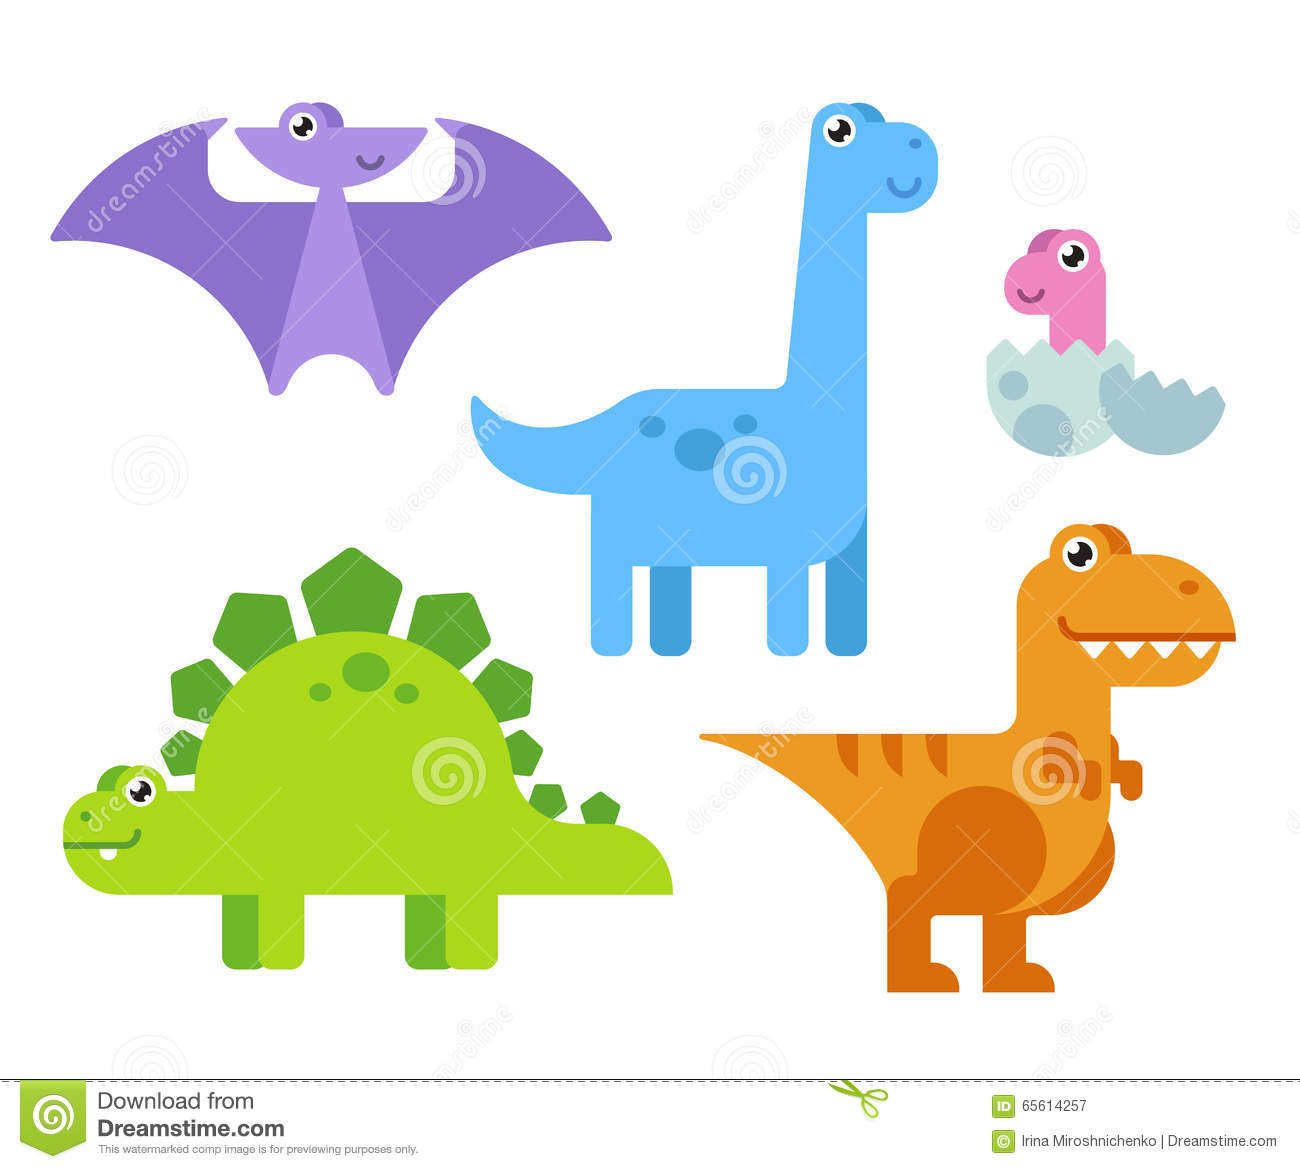 Image of: Images Cute Cartoon Dinosaurs Dreamstimecom Cute Cartoon Dinosaurs Stock Vector Illustration Of Dino 65614257